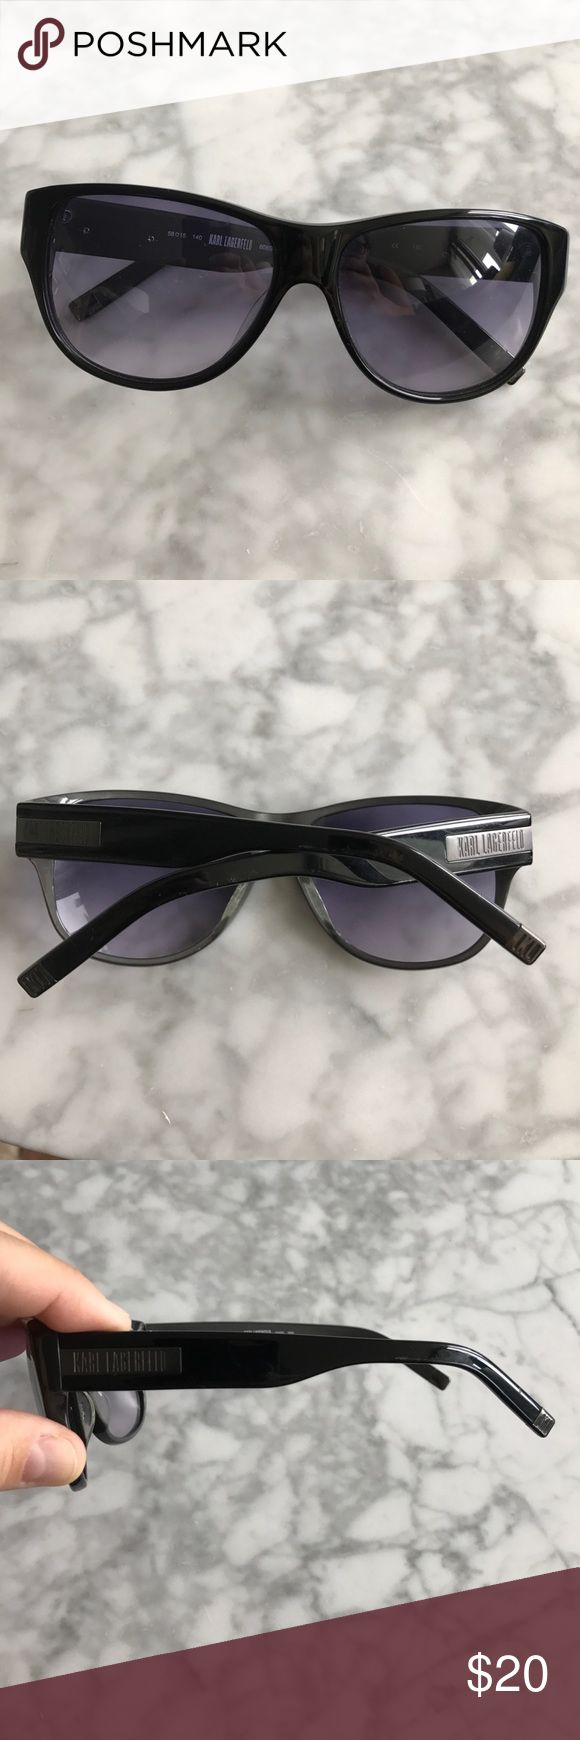 Karl Lagerfeld Sunglasses No scratches on glass, frame has little signs of wear, but nothing major Karl Lagerfeld Accessories Glasses